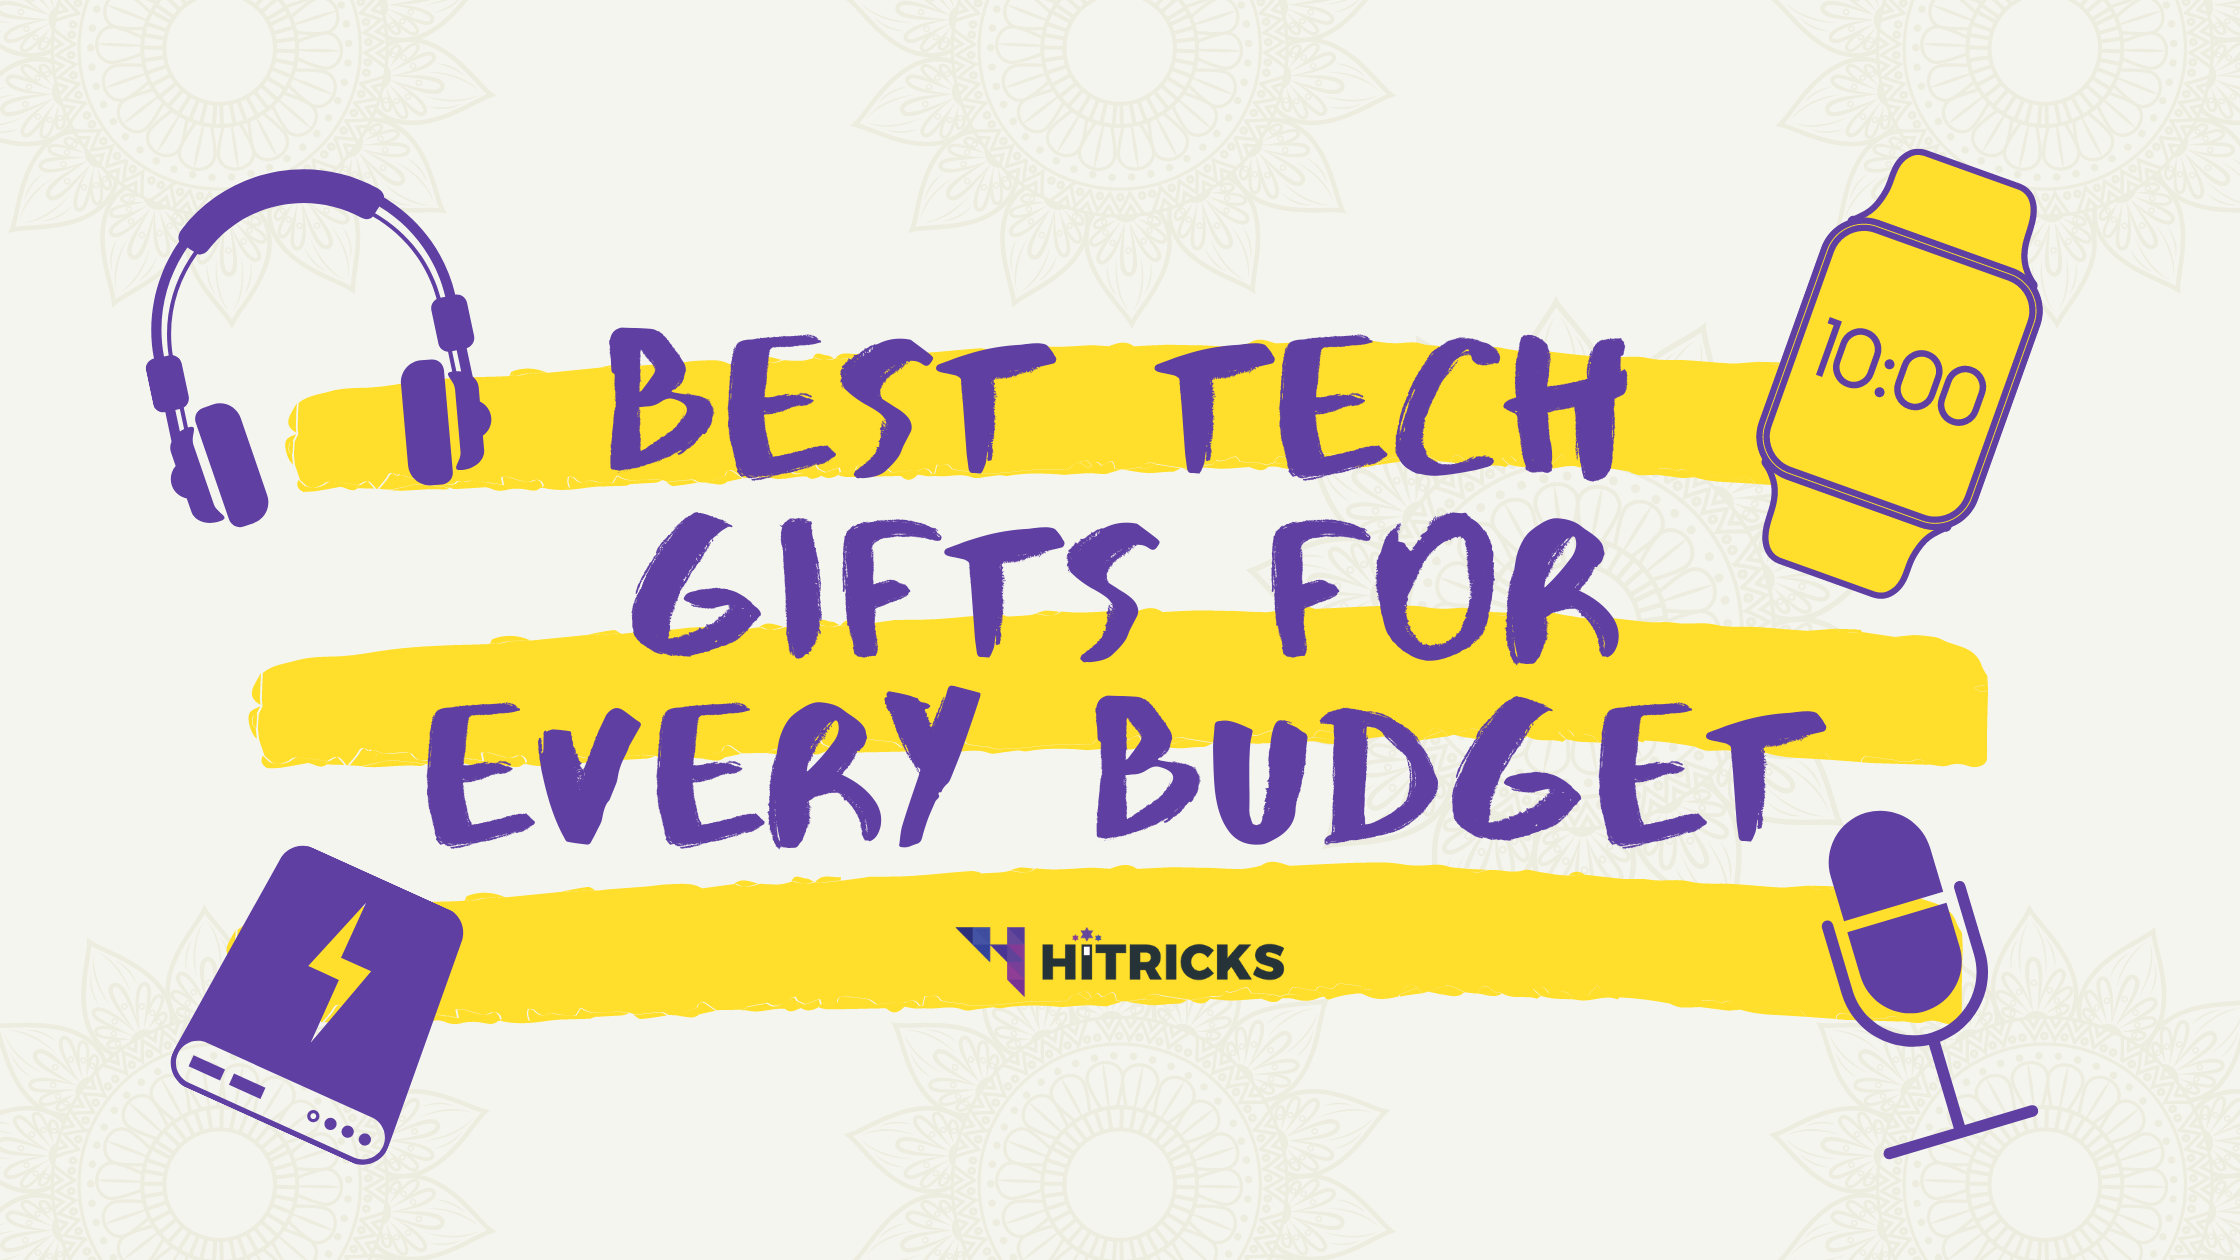 GUIDE: Best Tech Gifts for Every Budget